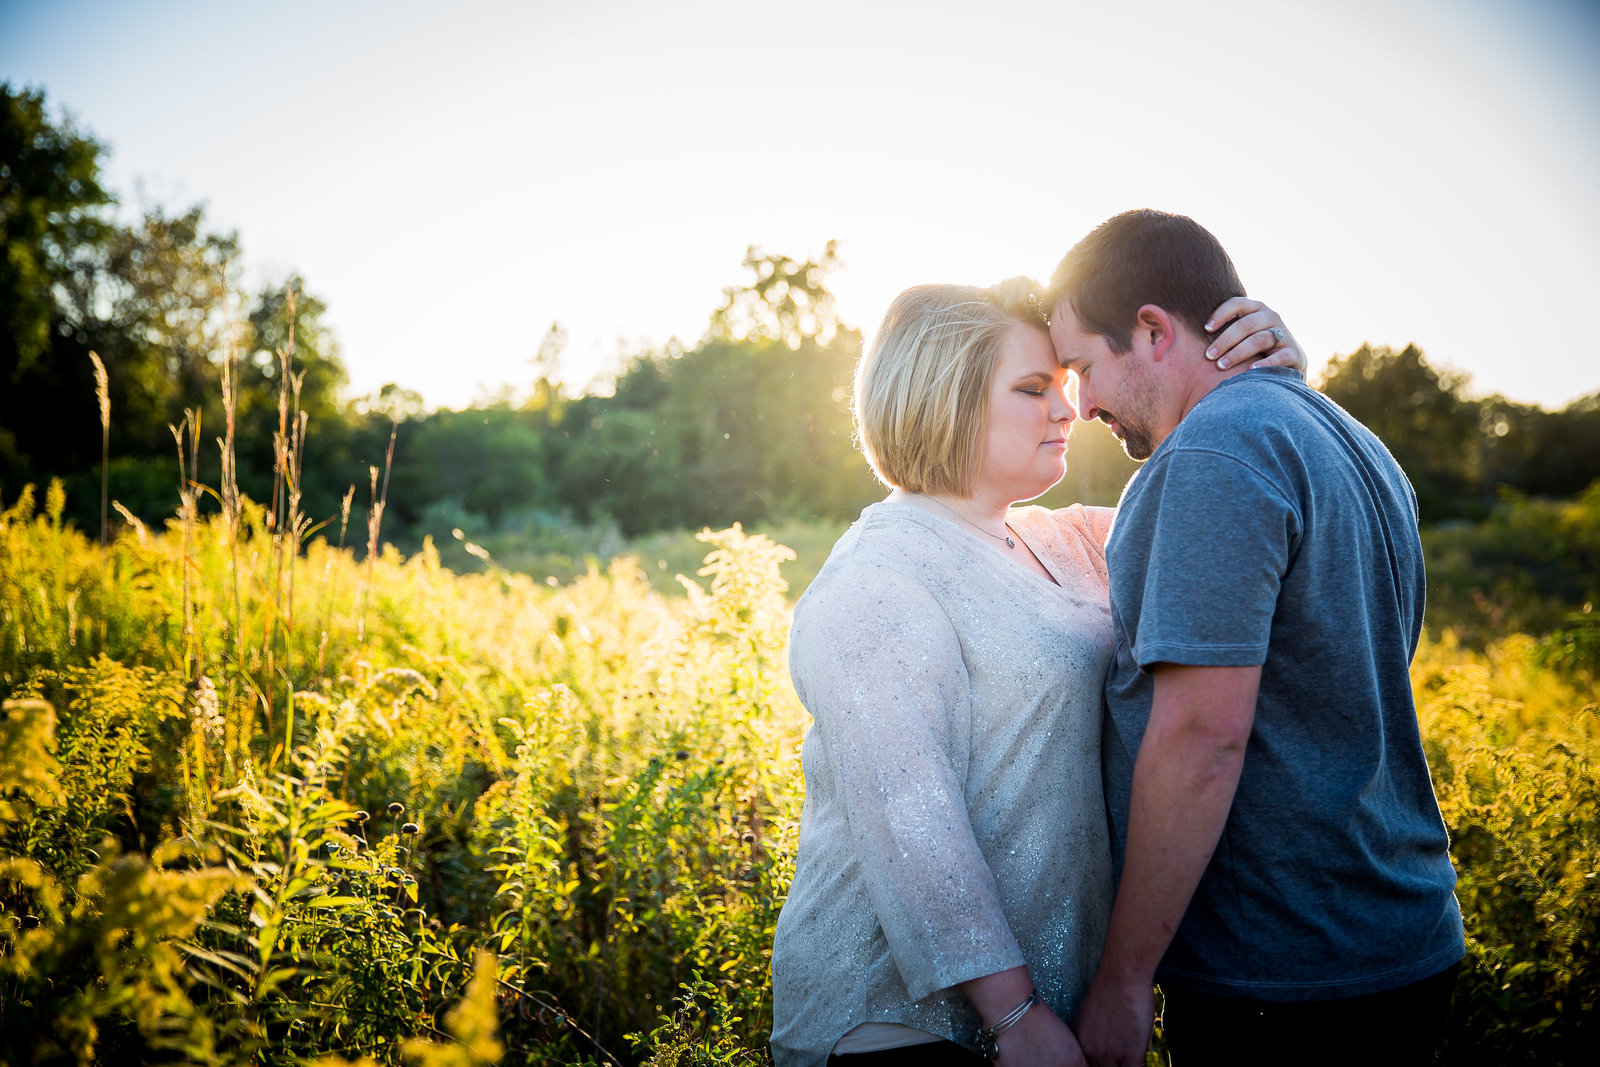 Beth&TimEngaged|October2nd2015-204